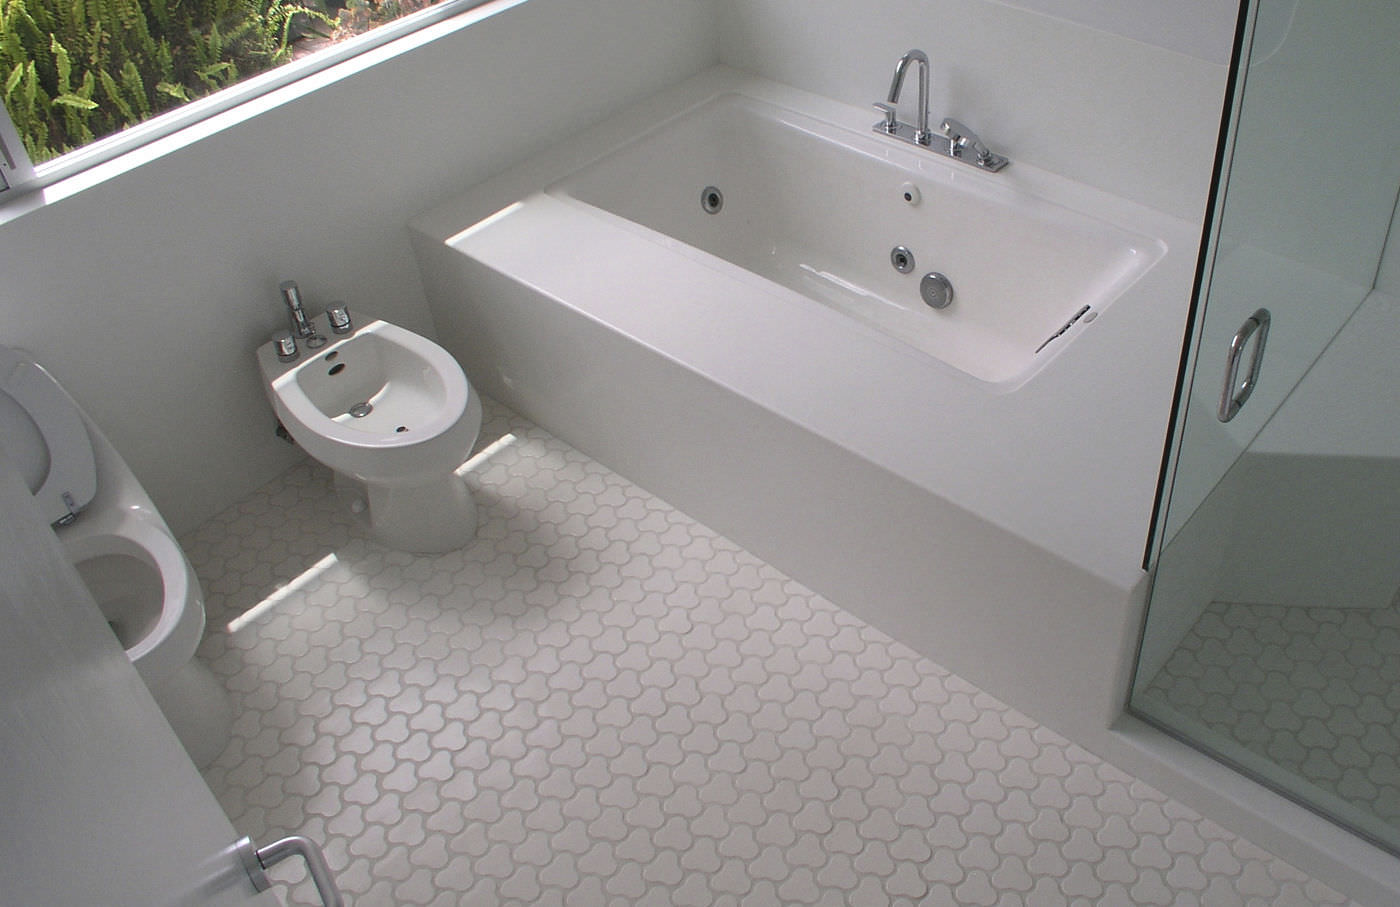 indoor tile  bathroom  floor  ceramic  bom  daniel ogassian - indoor tile  bathroom  floor  ceramic  bom